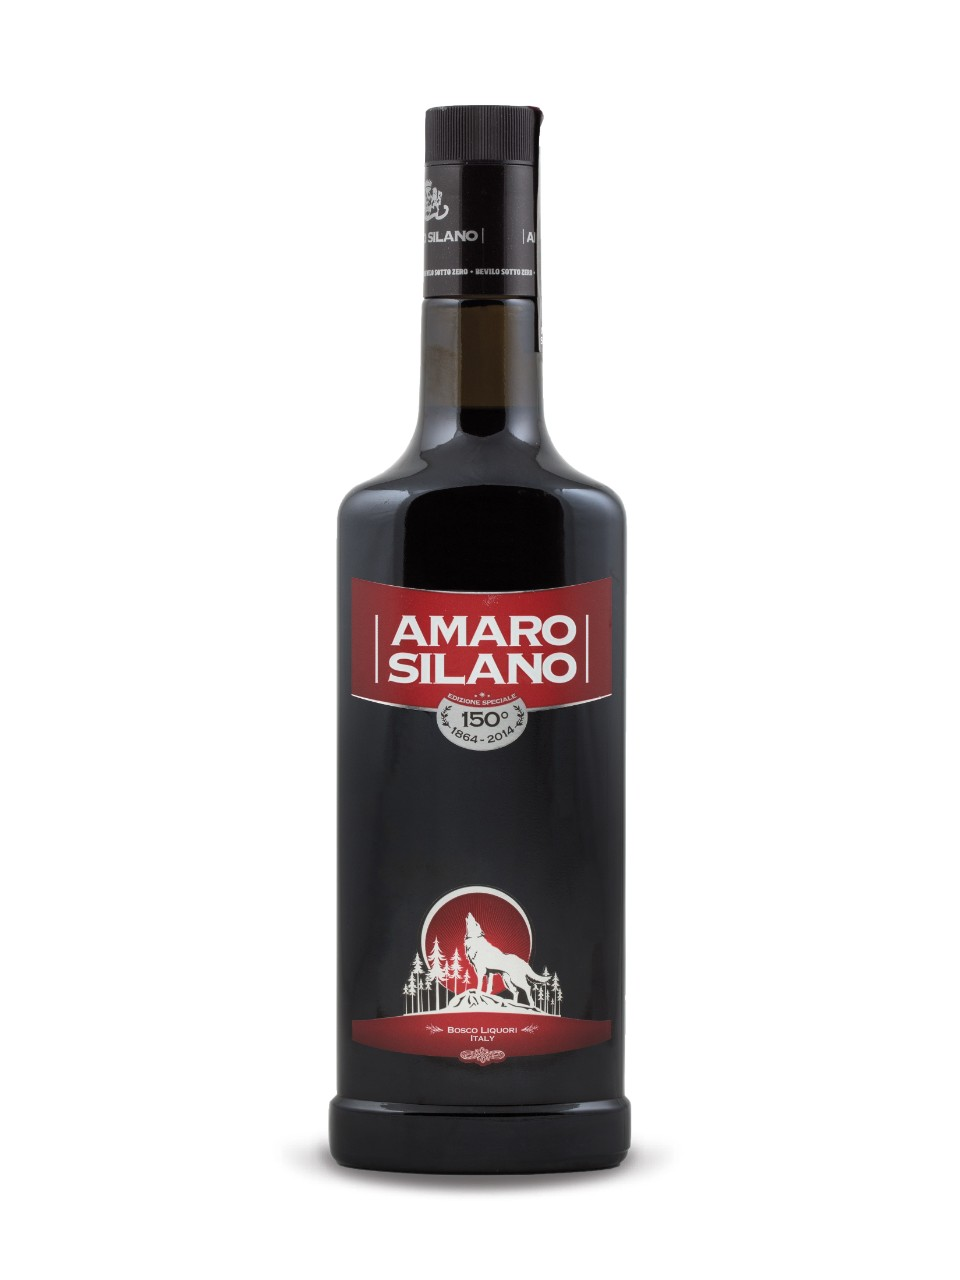 Amaro Silano Brand Now Available in the U.S.